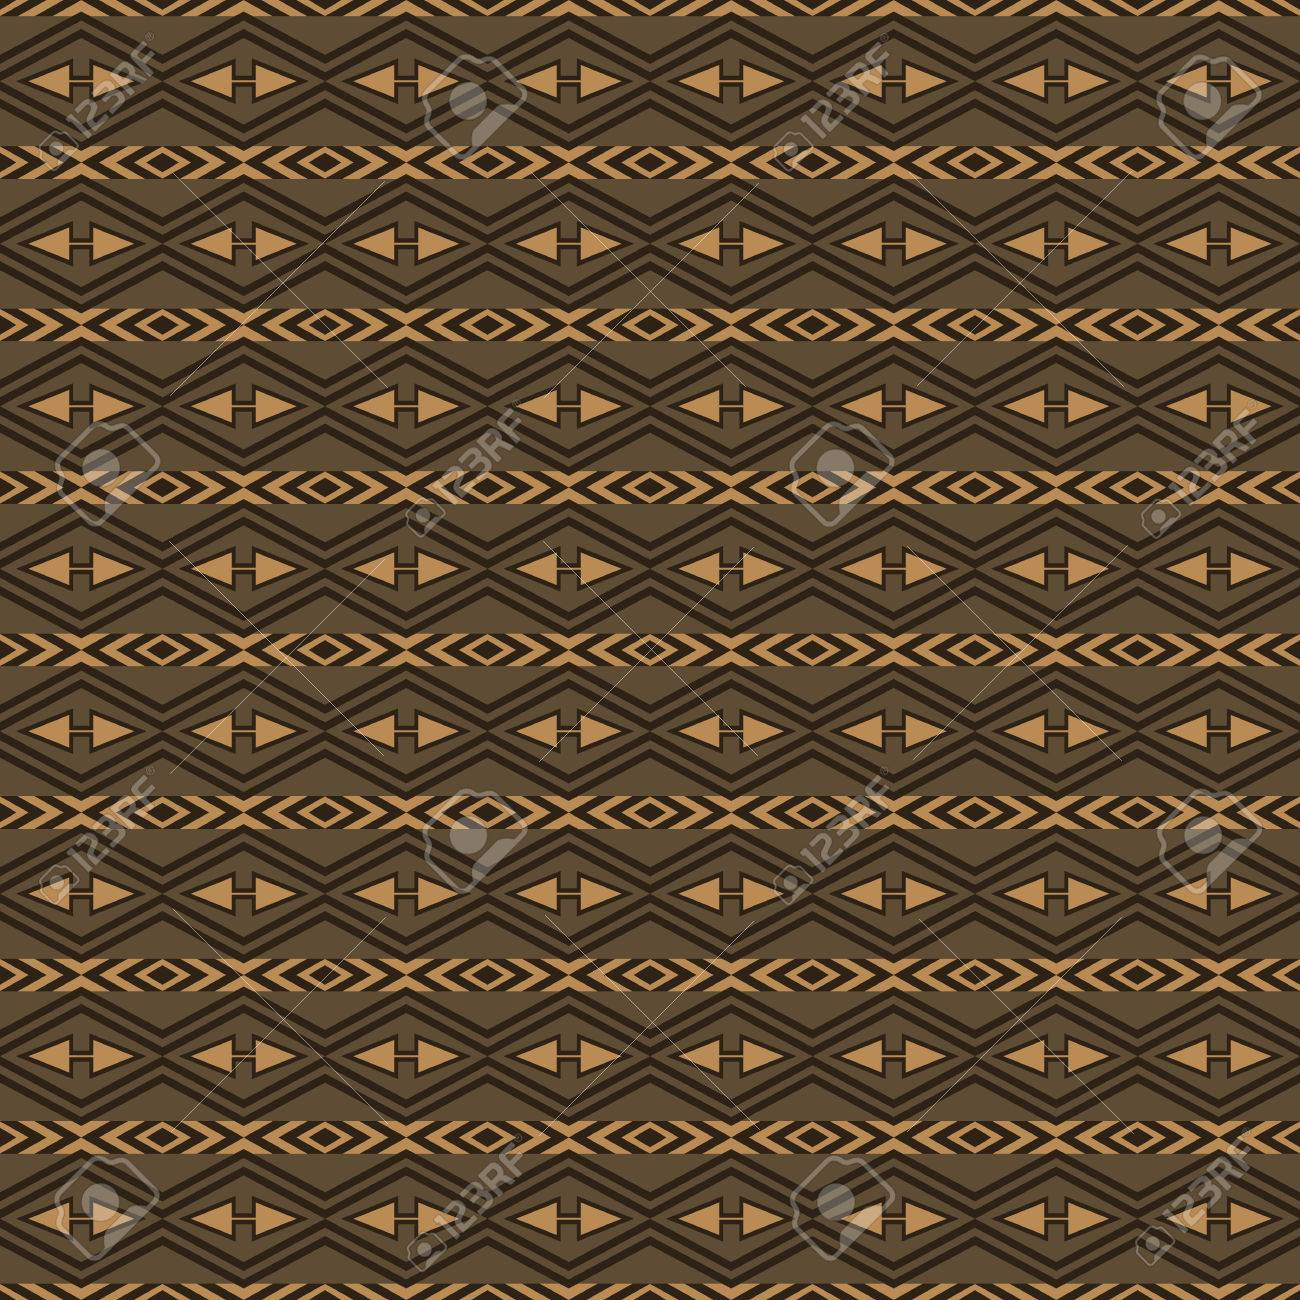 Seamless Pattern With Tribal Aztec Ornament Hipster Wallpaper In Brown Shades Boho Chic Design